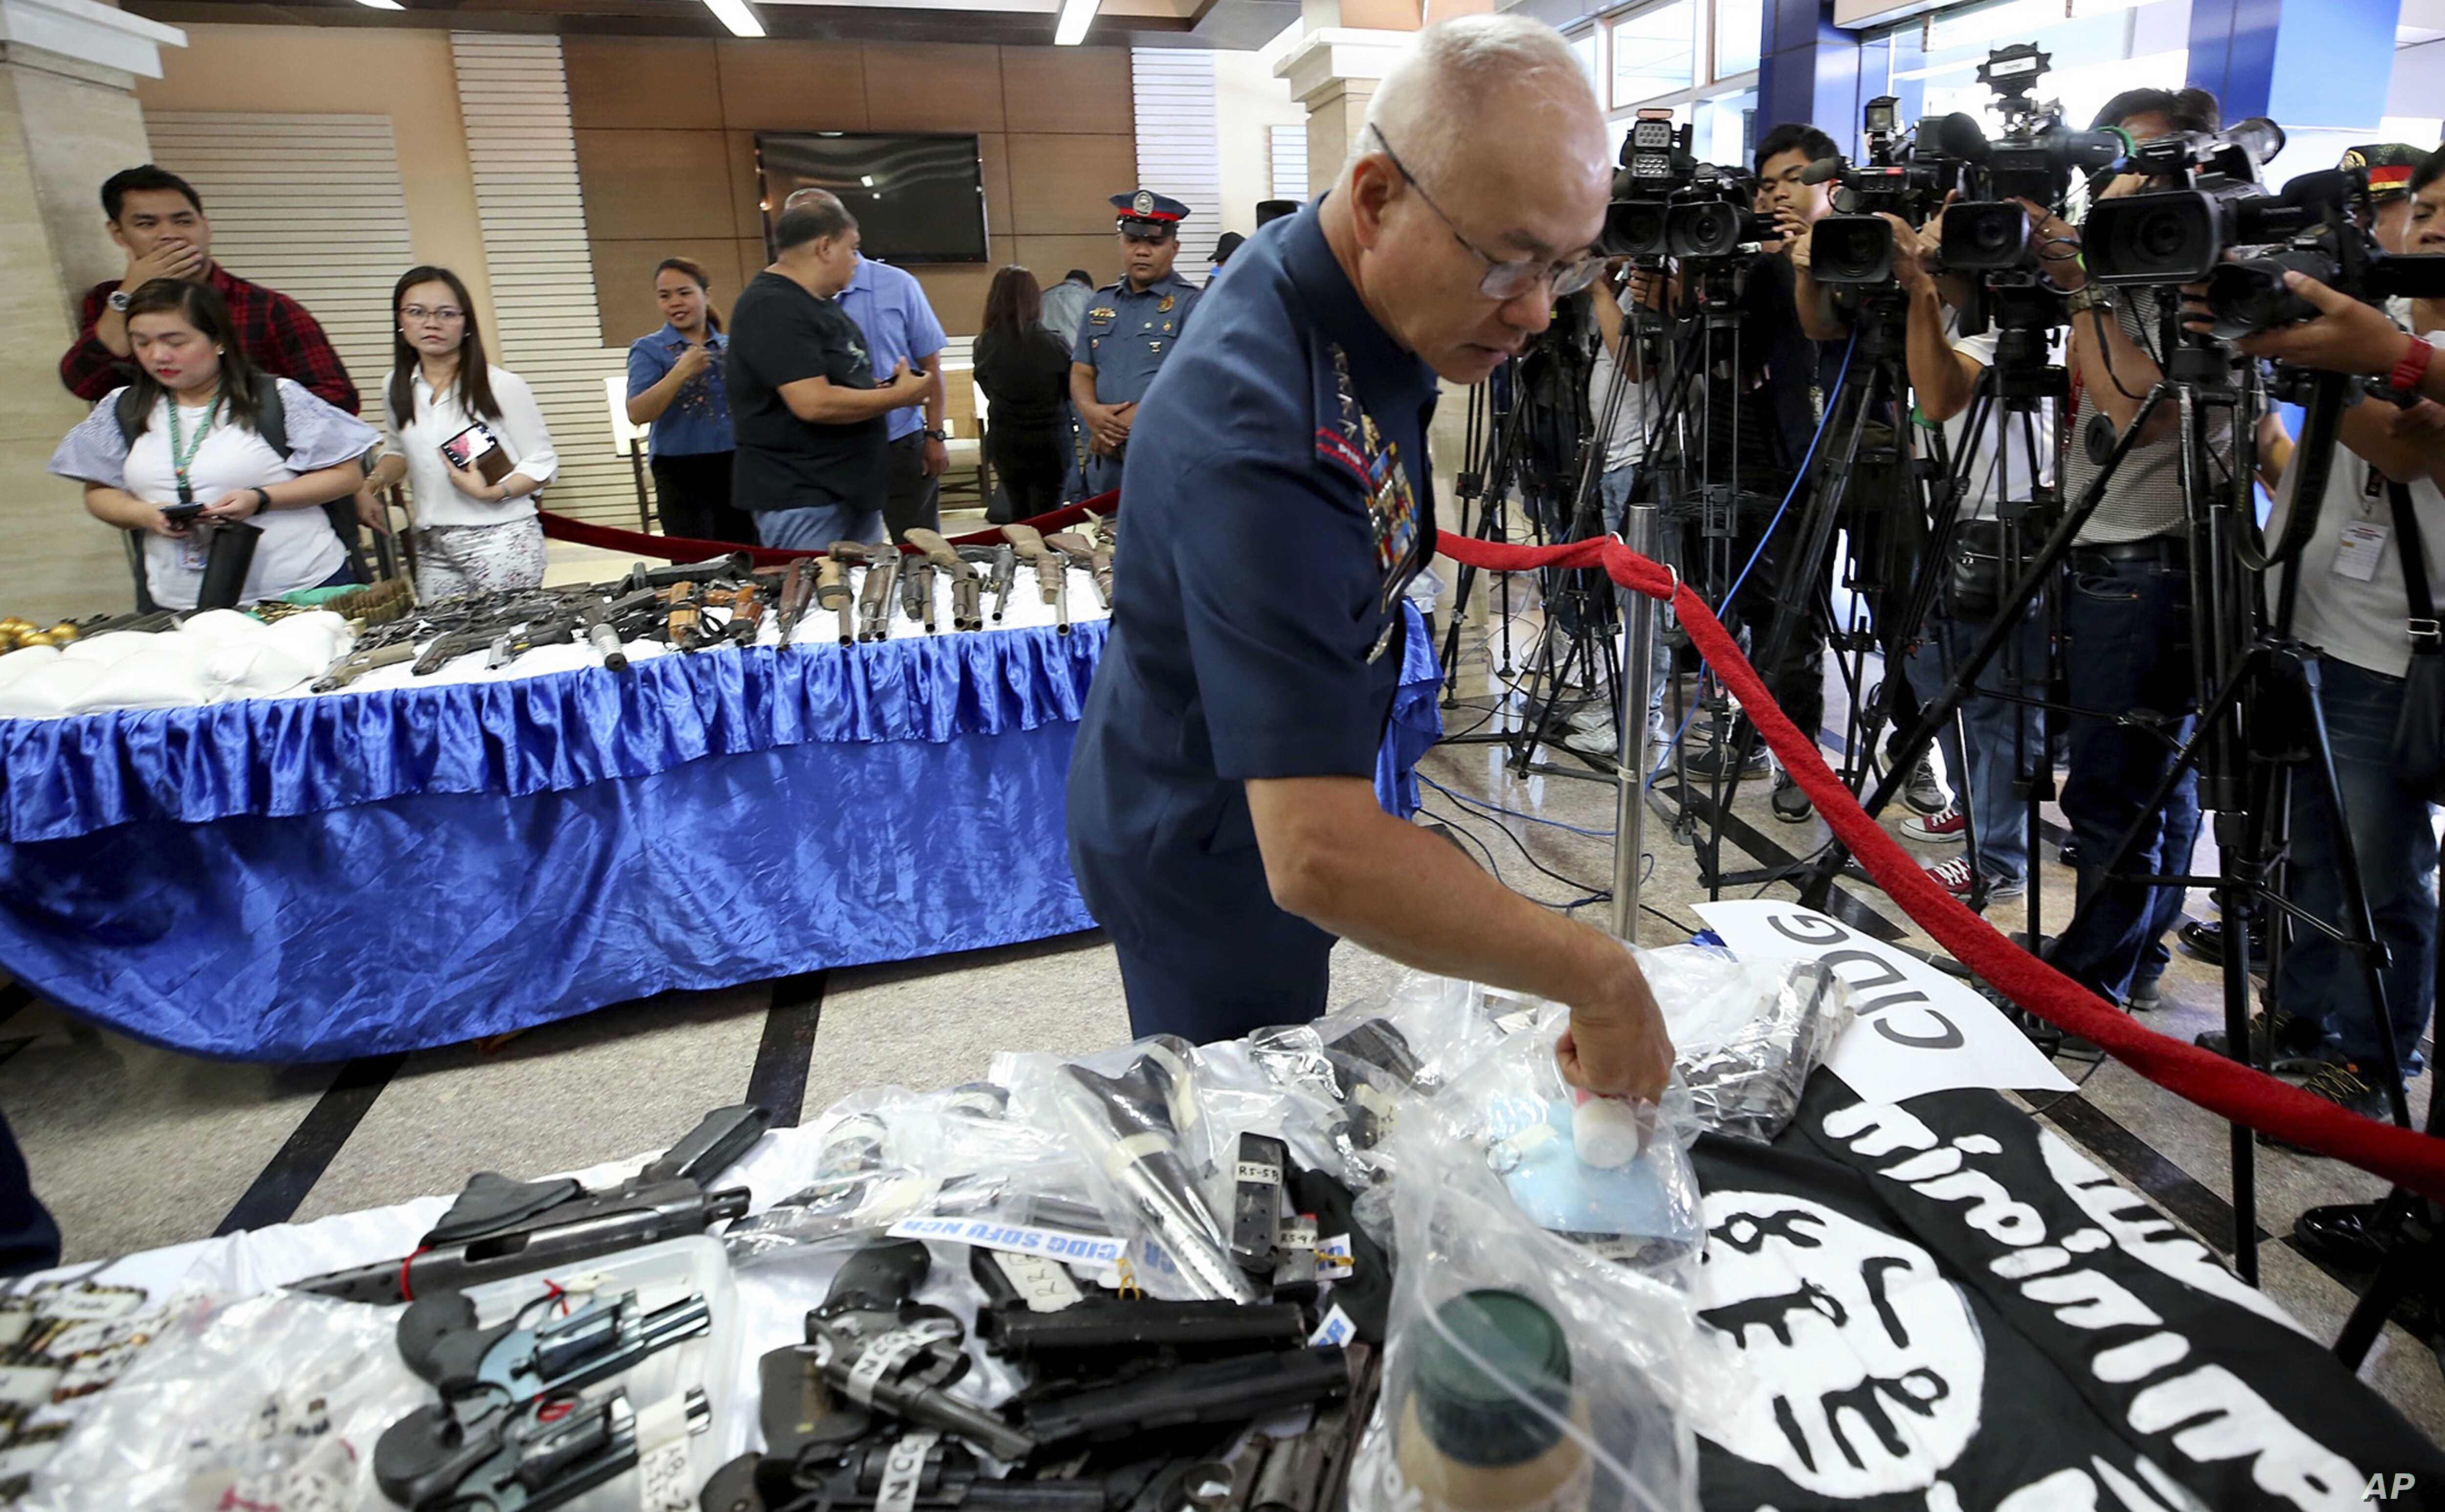 Philippine National Police Chief Gen. Oscar Albayalde inspects guns, explosives, and Islamic State group-style black flags during a news conference, at Camp Crame in suburban Quezon city northeast of Manila, Philippines, April 1, 2019.